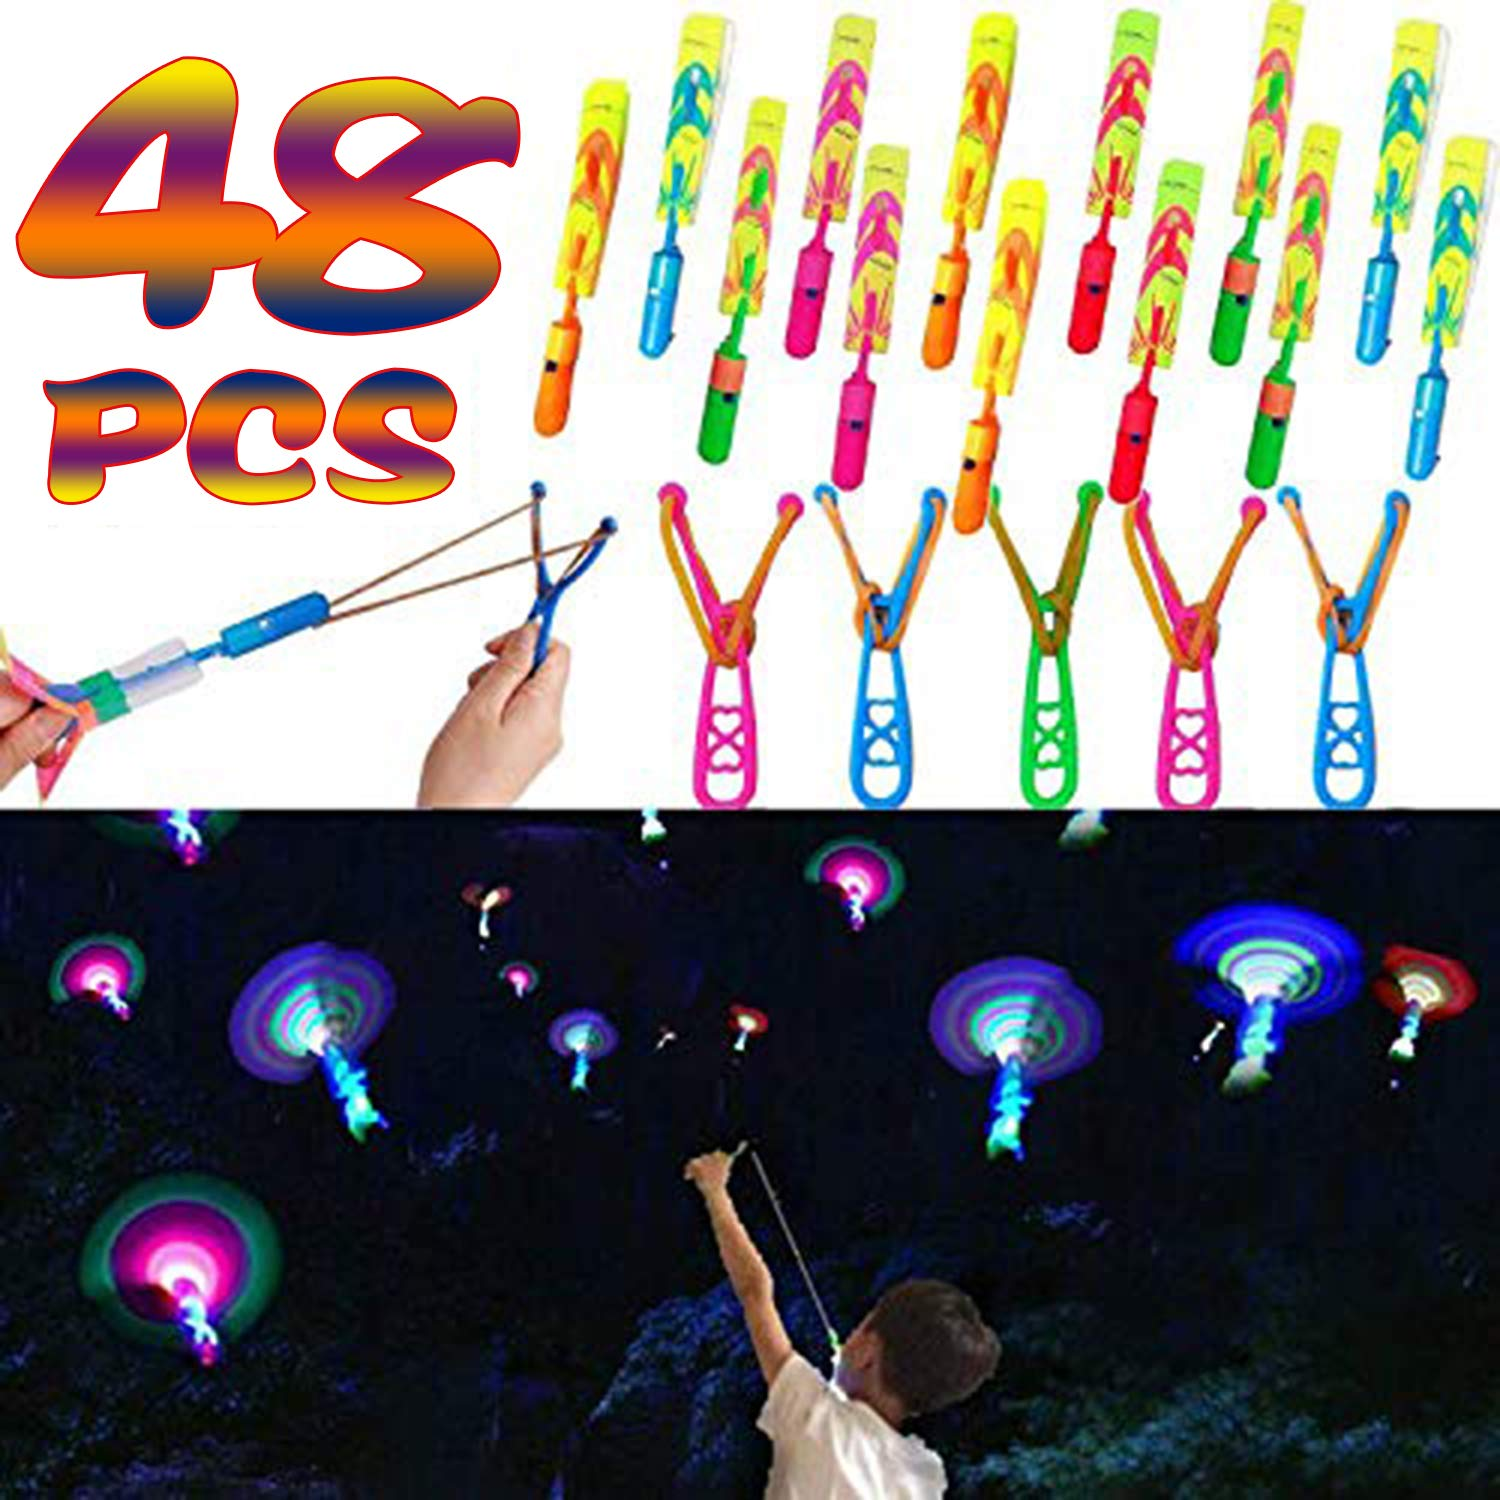 48 Pcs Light Up Slingshot Rockets Halloween Glow in The Dark Party Favors for Kids, LED Helicopters Arrow Rocket Helicopter Flying Toy Outdoor Game Holiday Party Supplies (24 Slingshot + 24 LED Rocket by Joyork